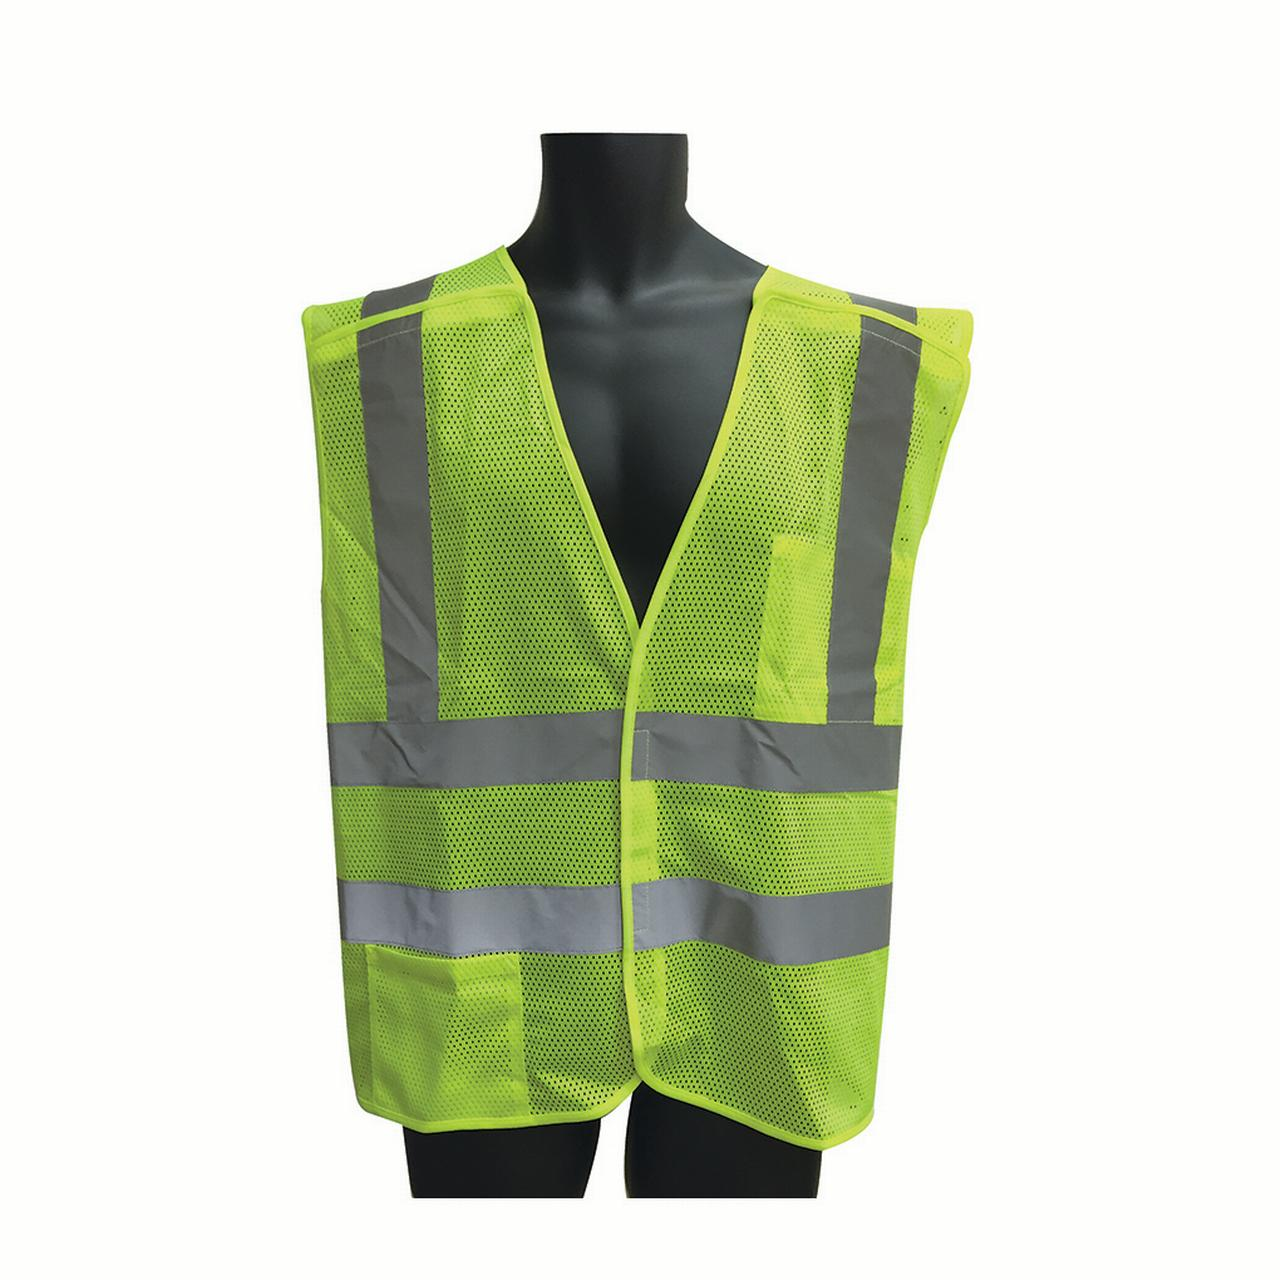 Class II, 5-Point Breakaway Vest Lime Green Mesh. Size: 3X-Large Lot of 1 Pack(s) of 1 Unit